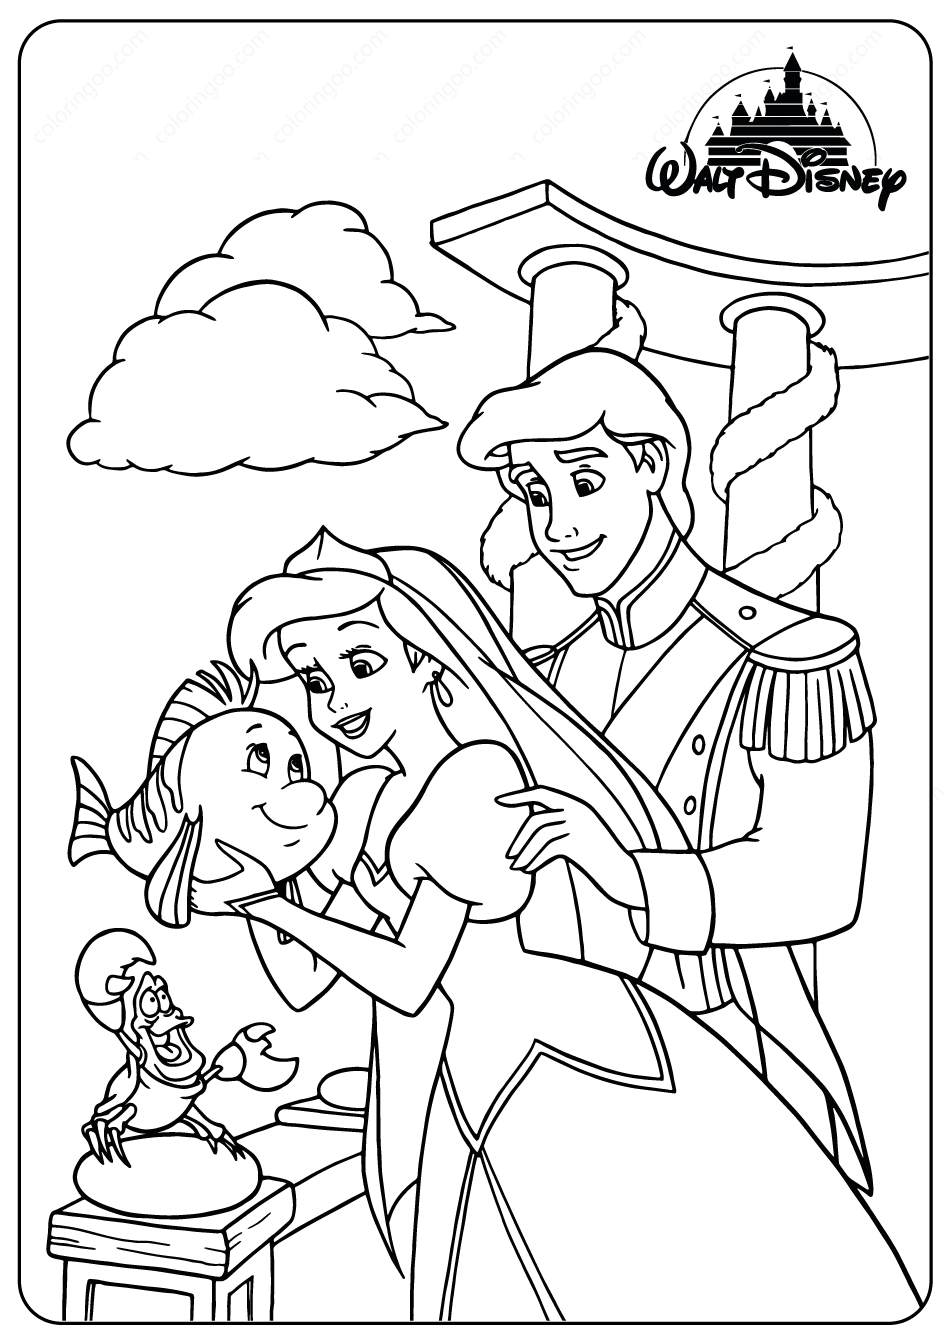 ariel and eric coloring pages printable ariel and prince eric coloring pages coloring pages and ariel eric